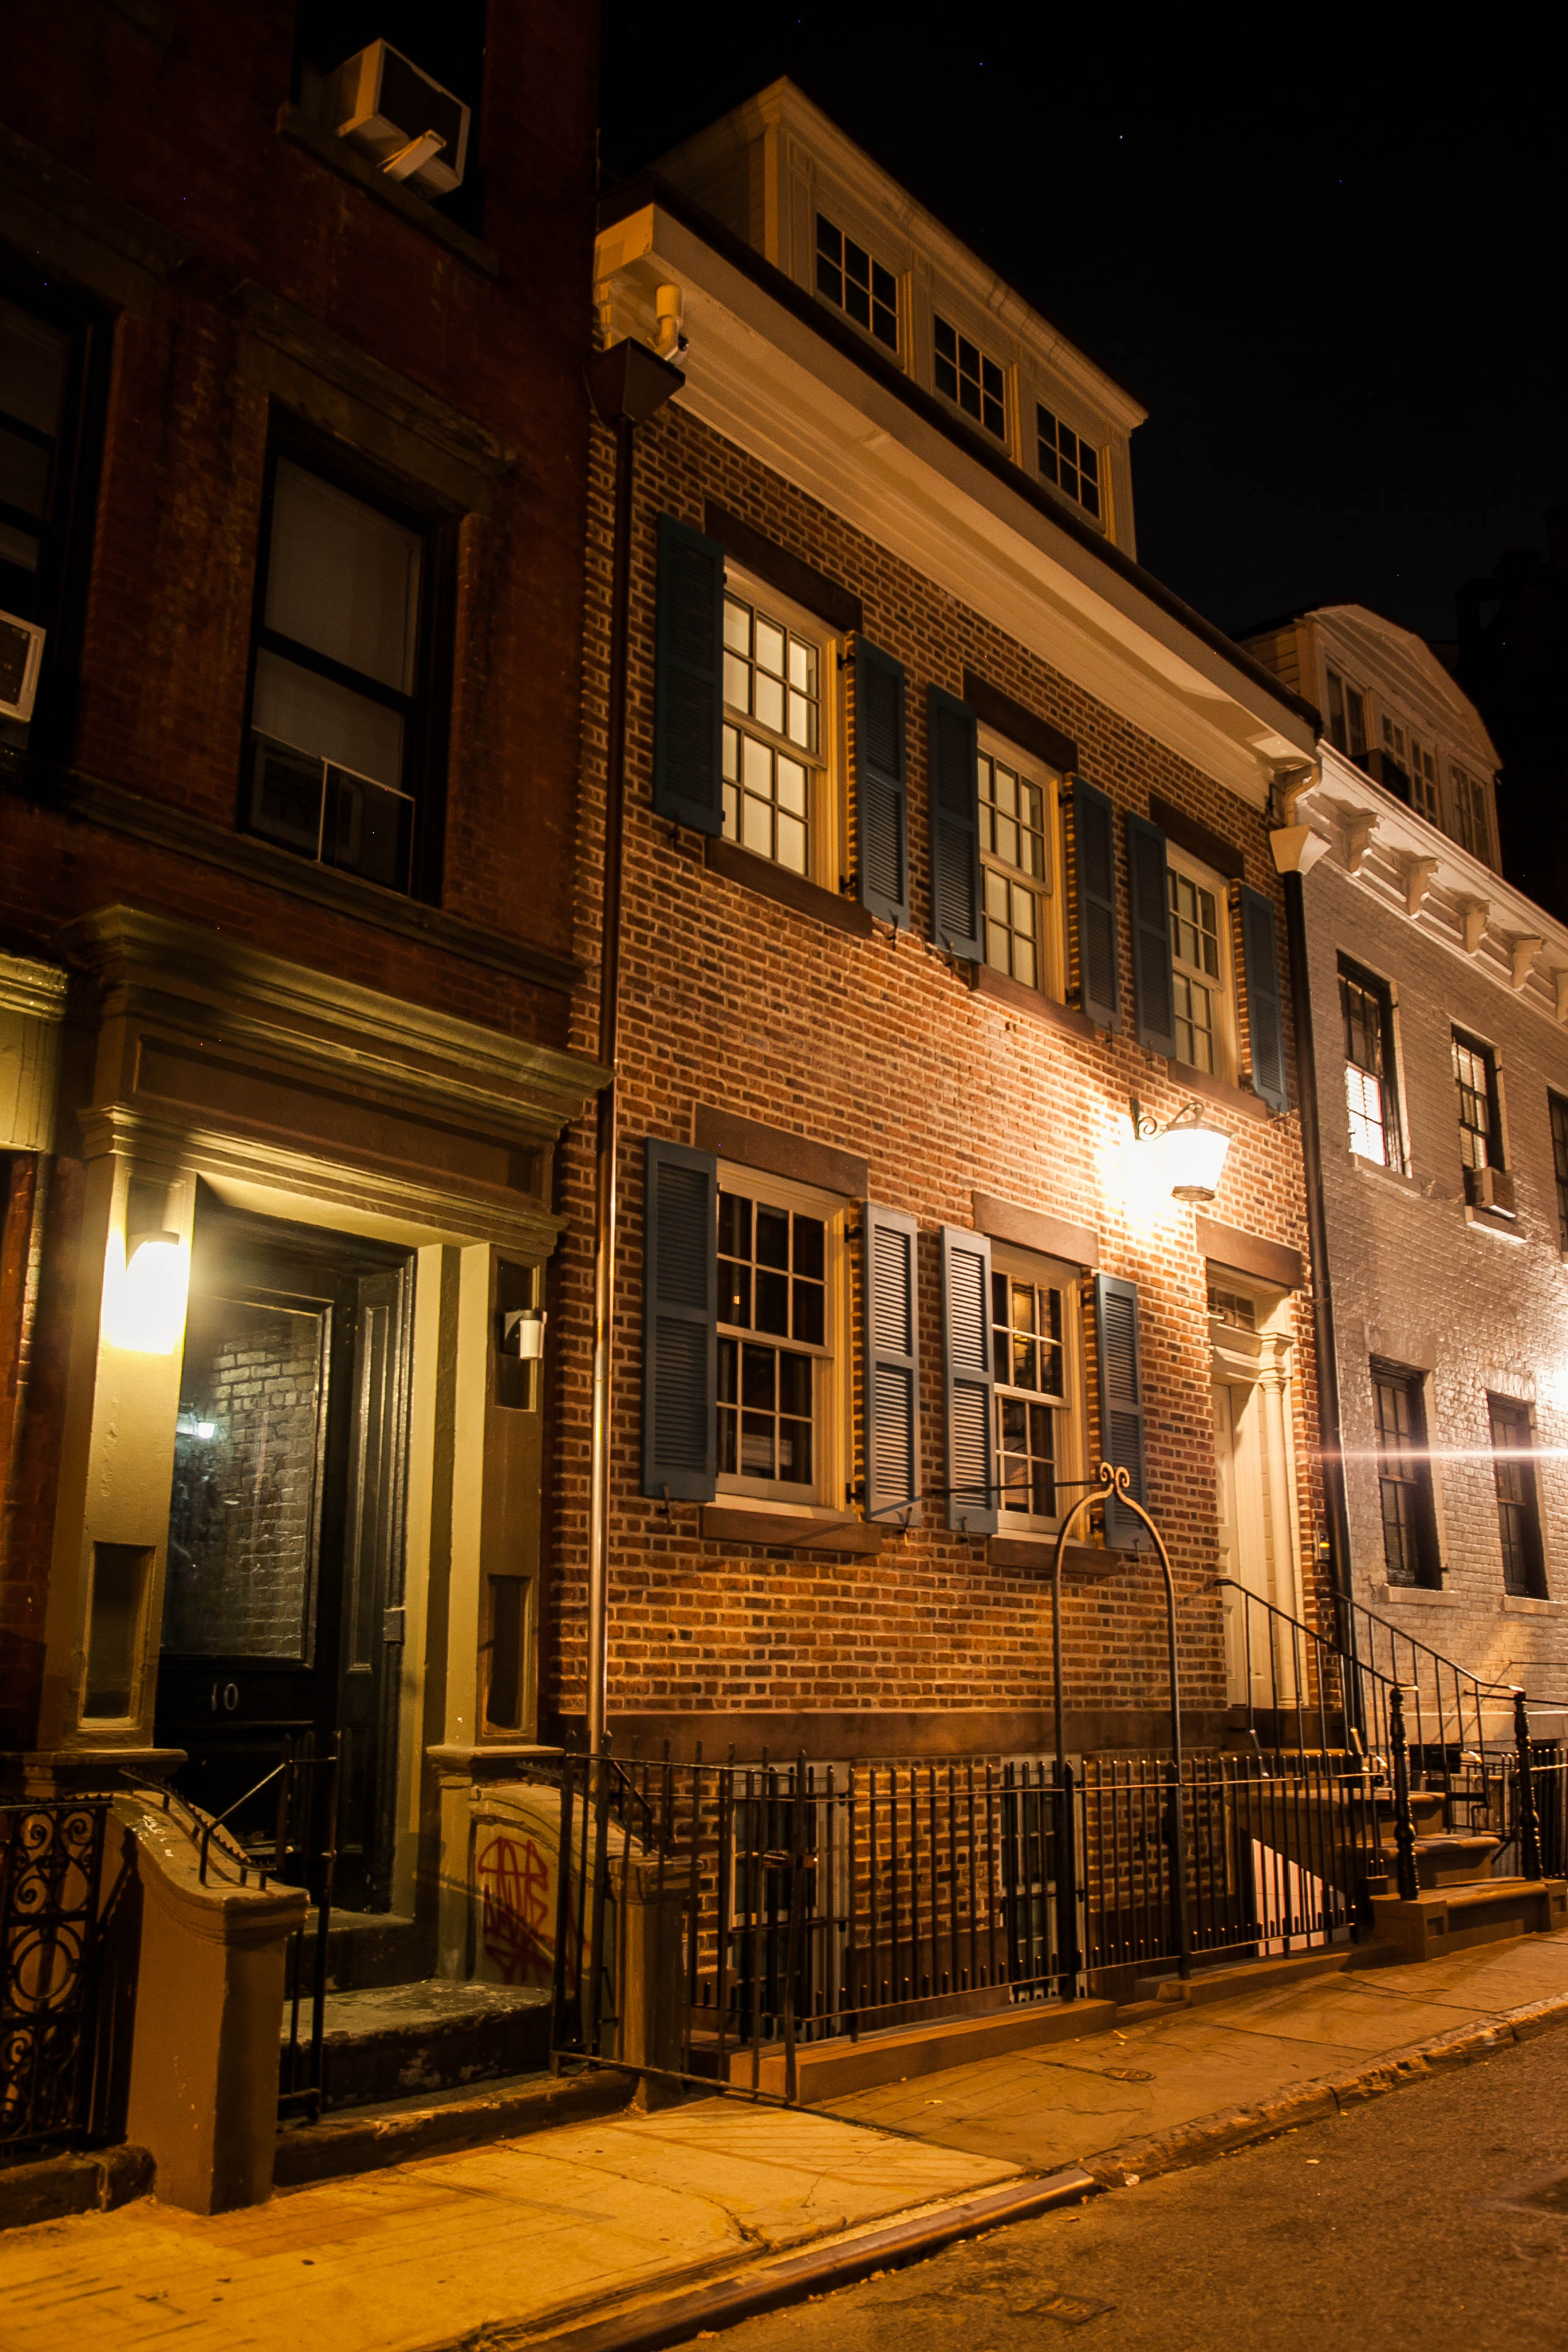 The Pirates Den house, a speakeasy and house of ill repute in NYC's Greenwich Village